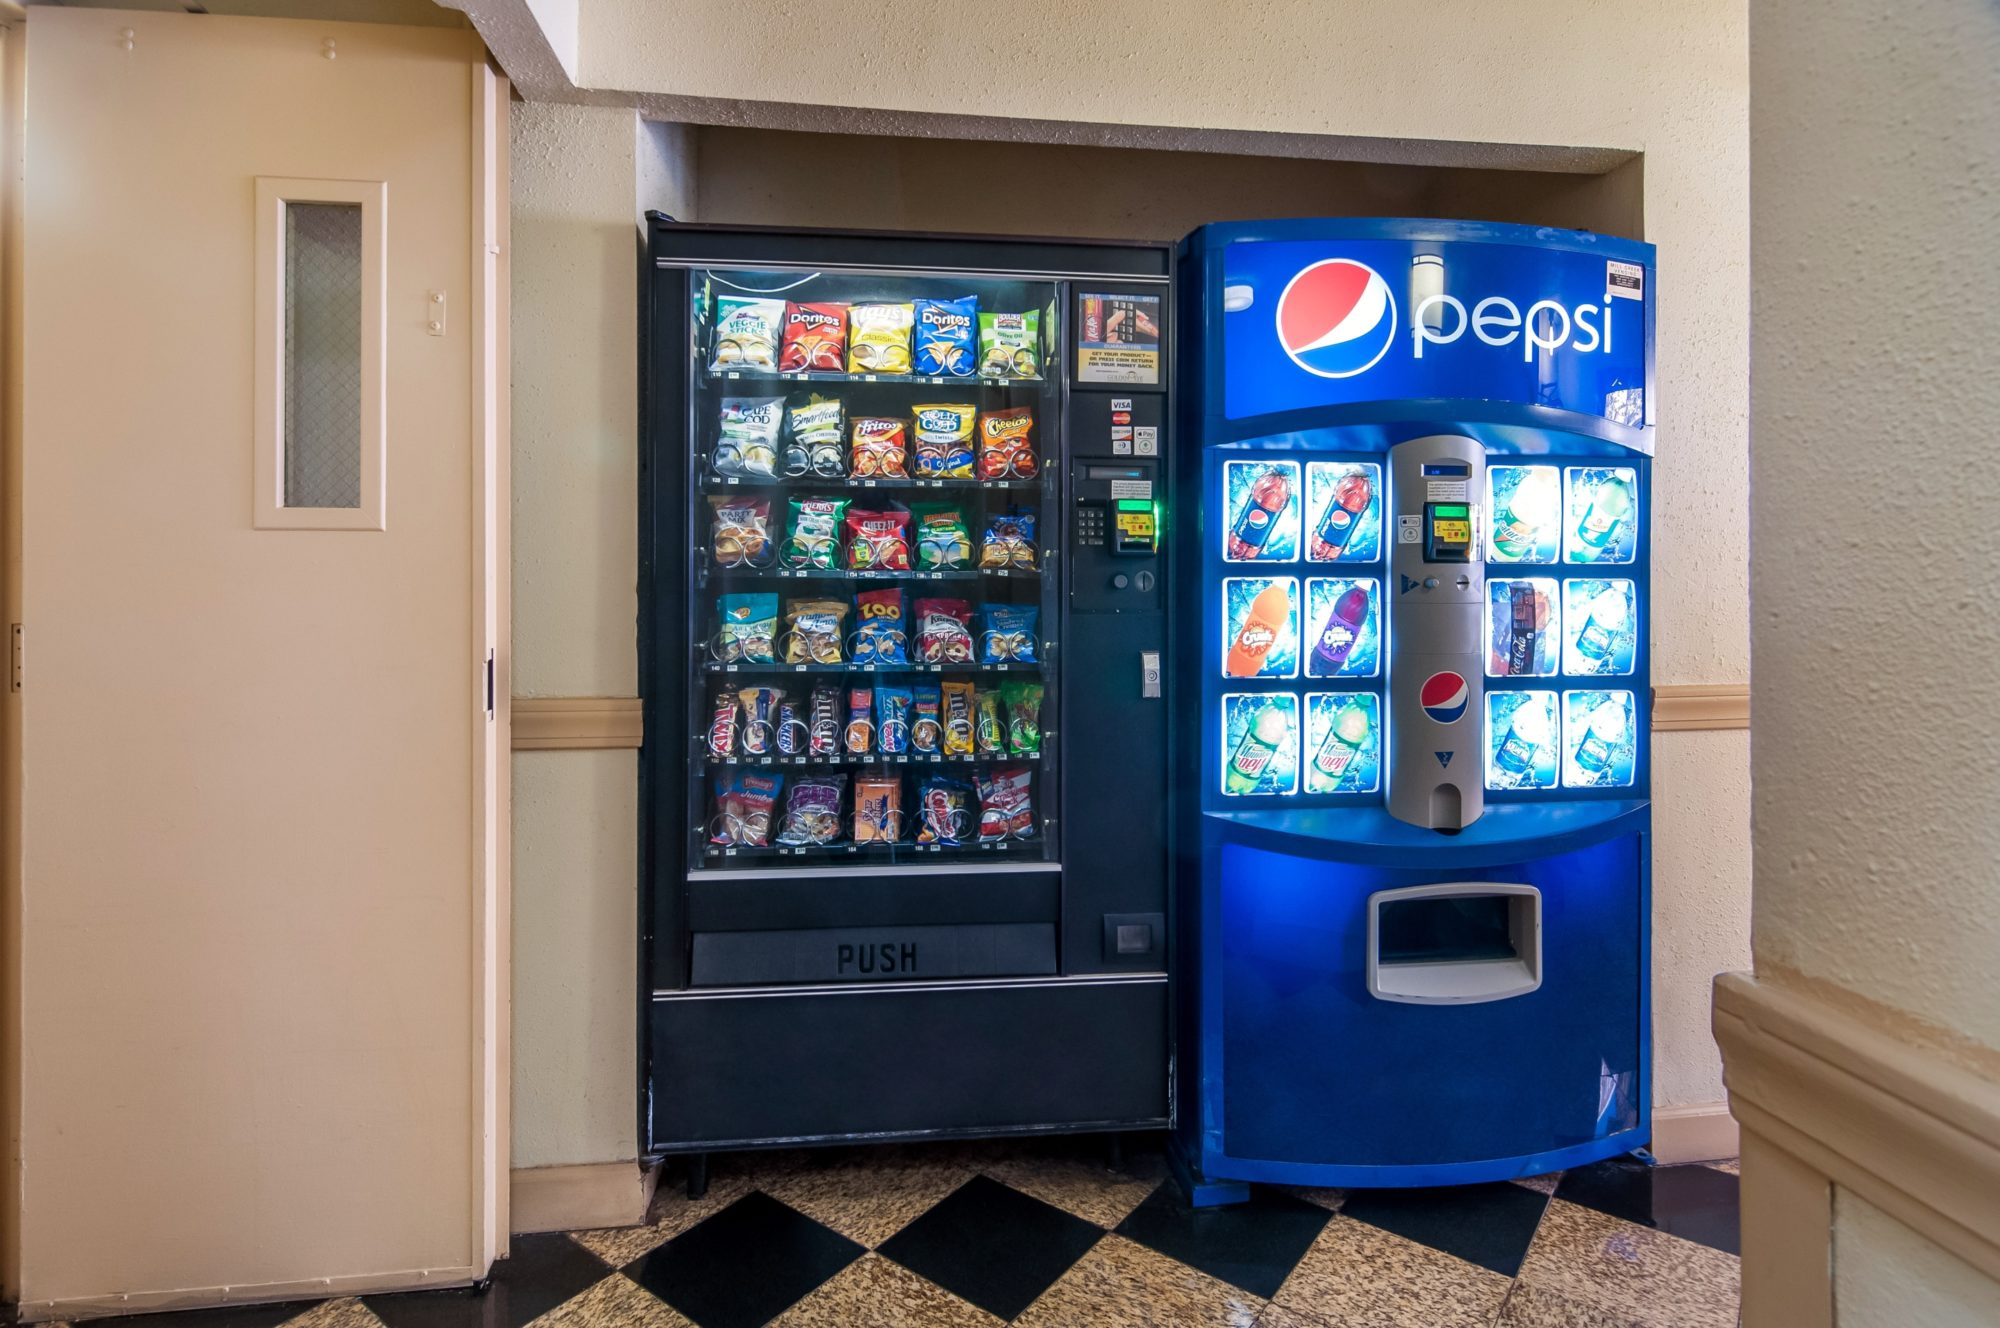 Snack and drinks vending machines, tiled flooring